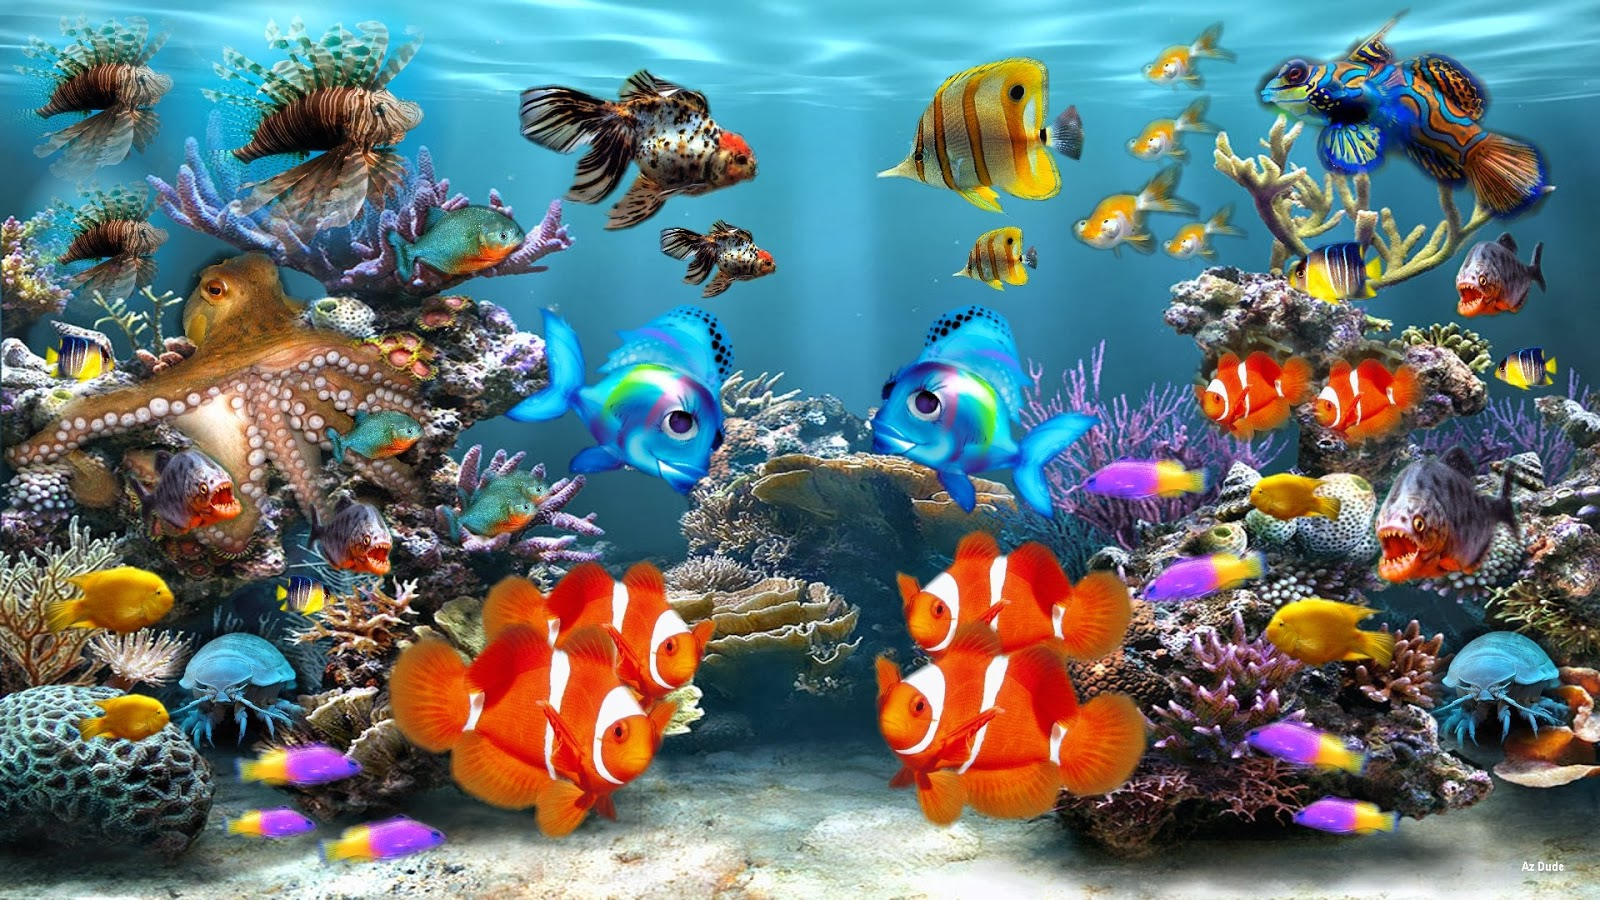 aquarium hd wallpaper - photo #29